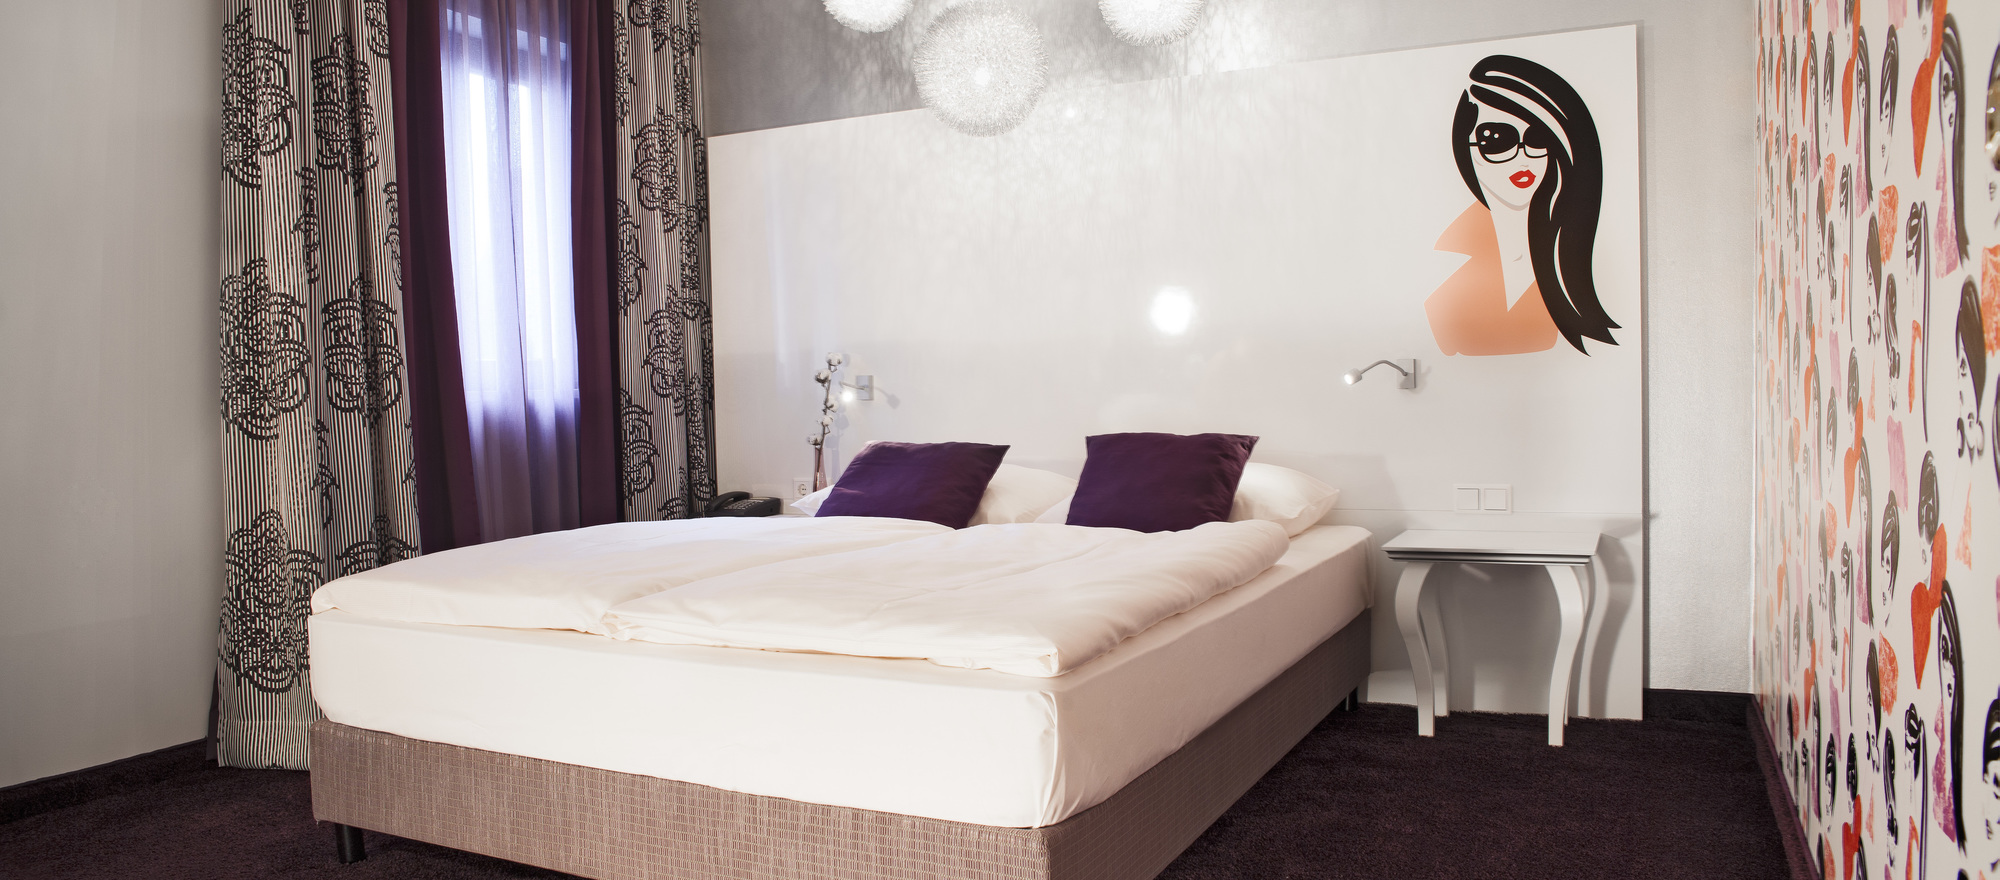 All standard rooms are individual and fancy furnished in the 3-star-superior hotel Ringhotel Reubel in Nuremberg-Zirndorf